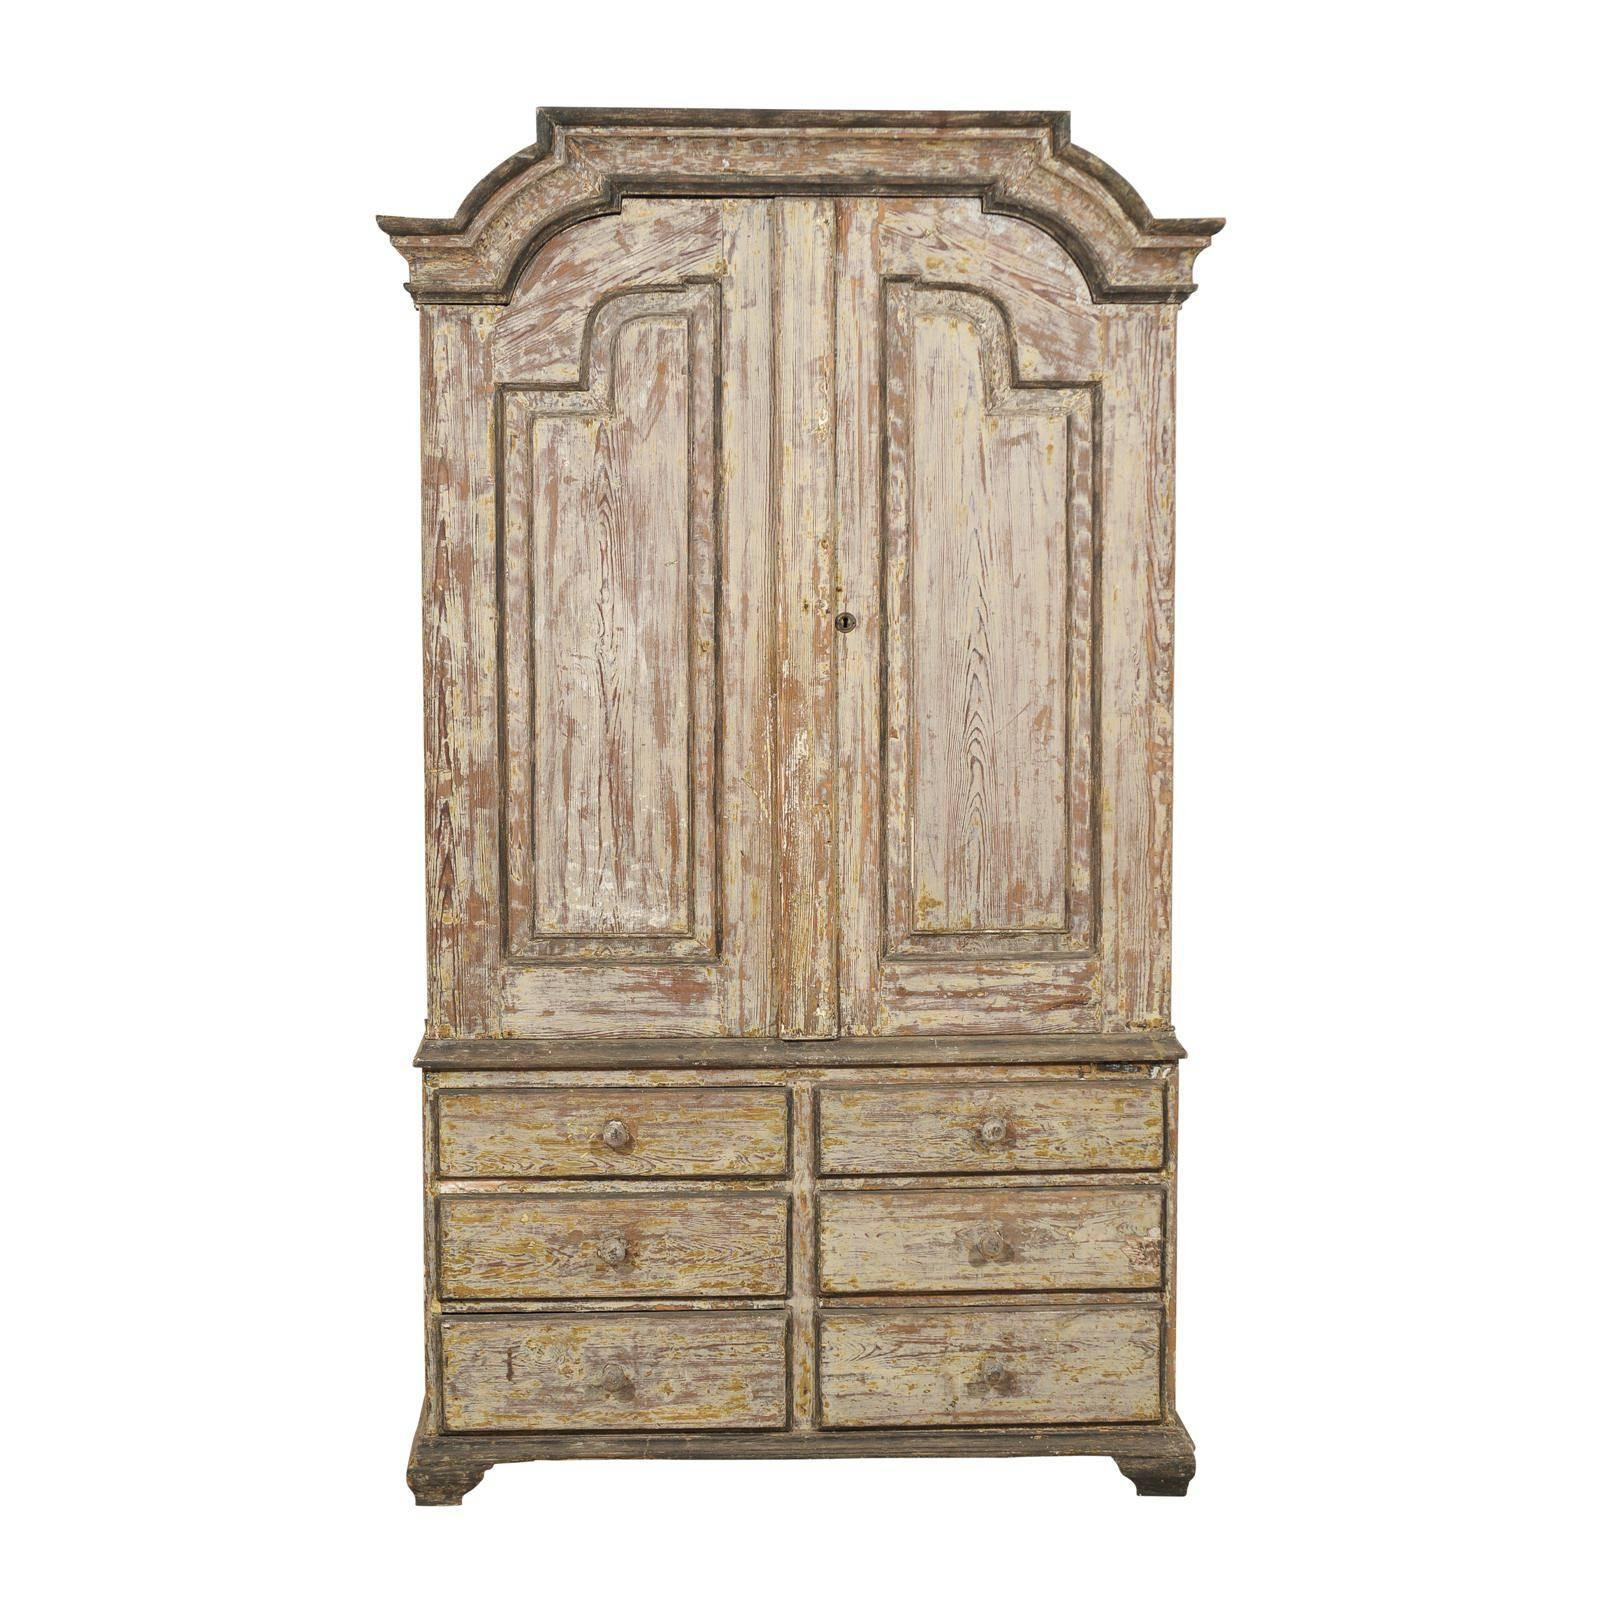 18th Century Swedish Period Rococo Wooden Cabinet with Original Paint